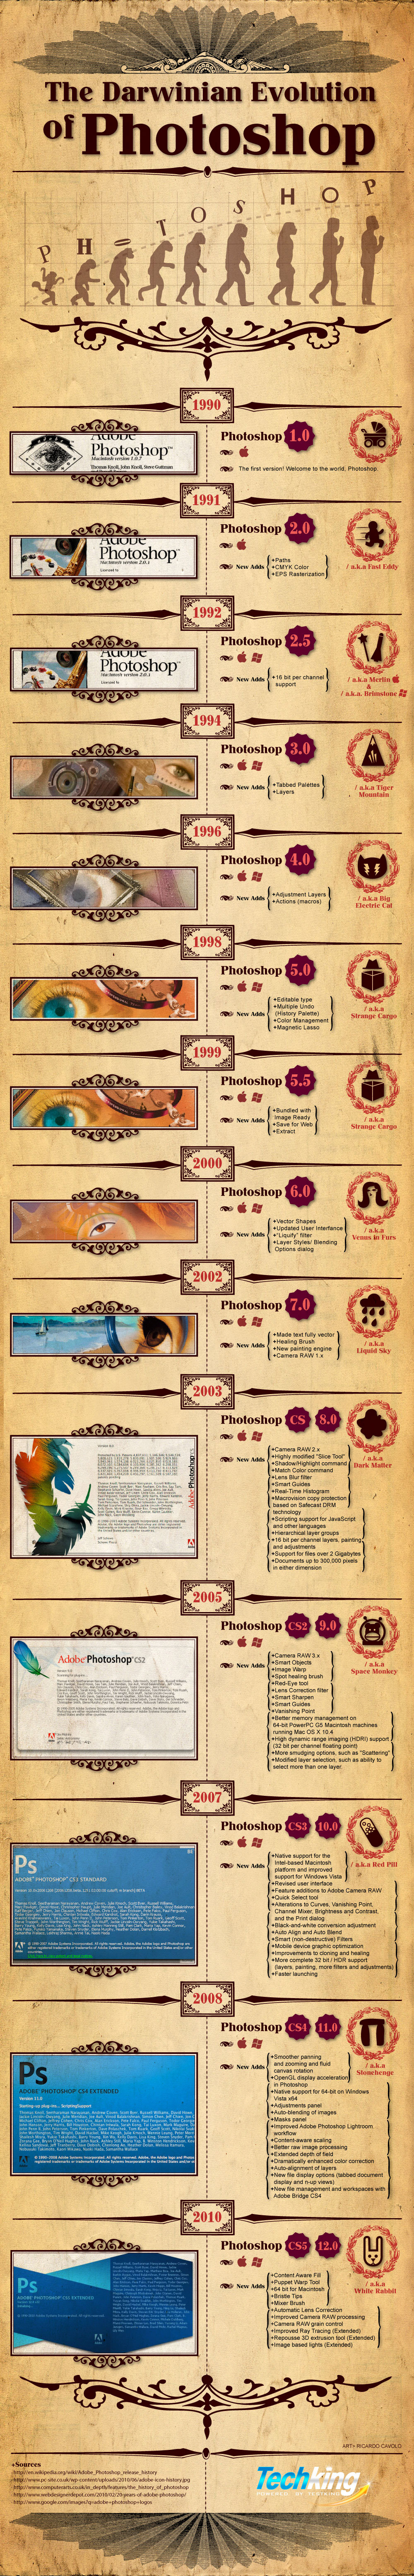 The Darwinian Evolution of Photoshop - Infographic